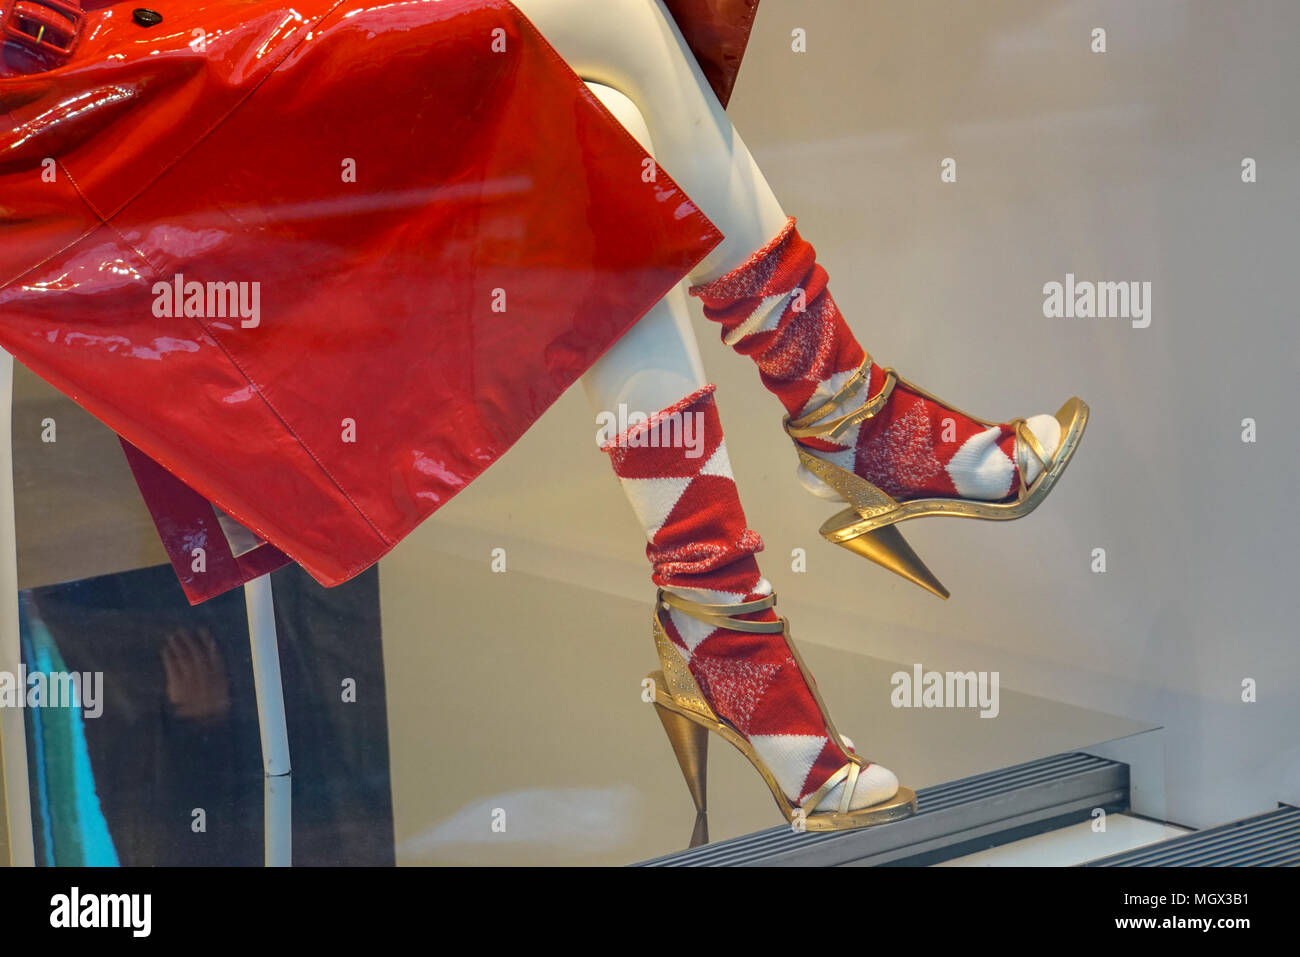 Red raincoat socks and high heel stiletto shoes on a dummy in a shop window - Stock Image